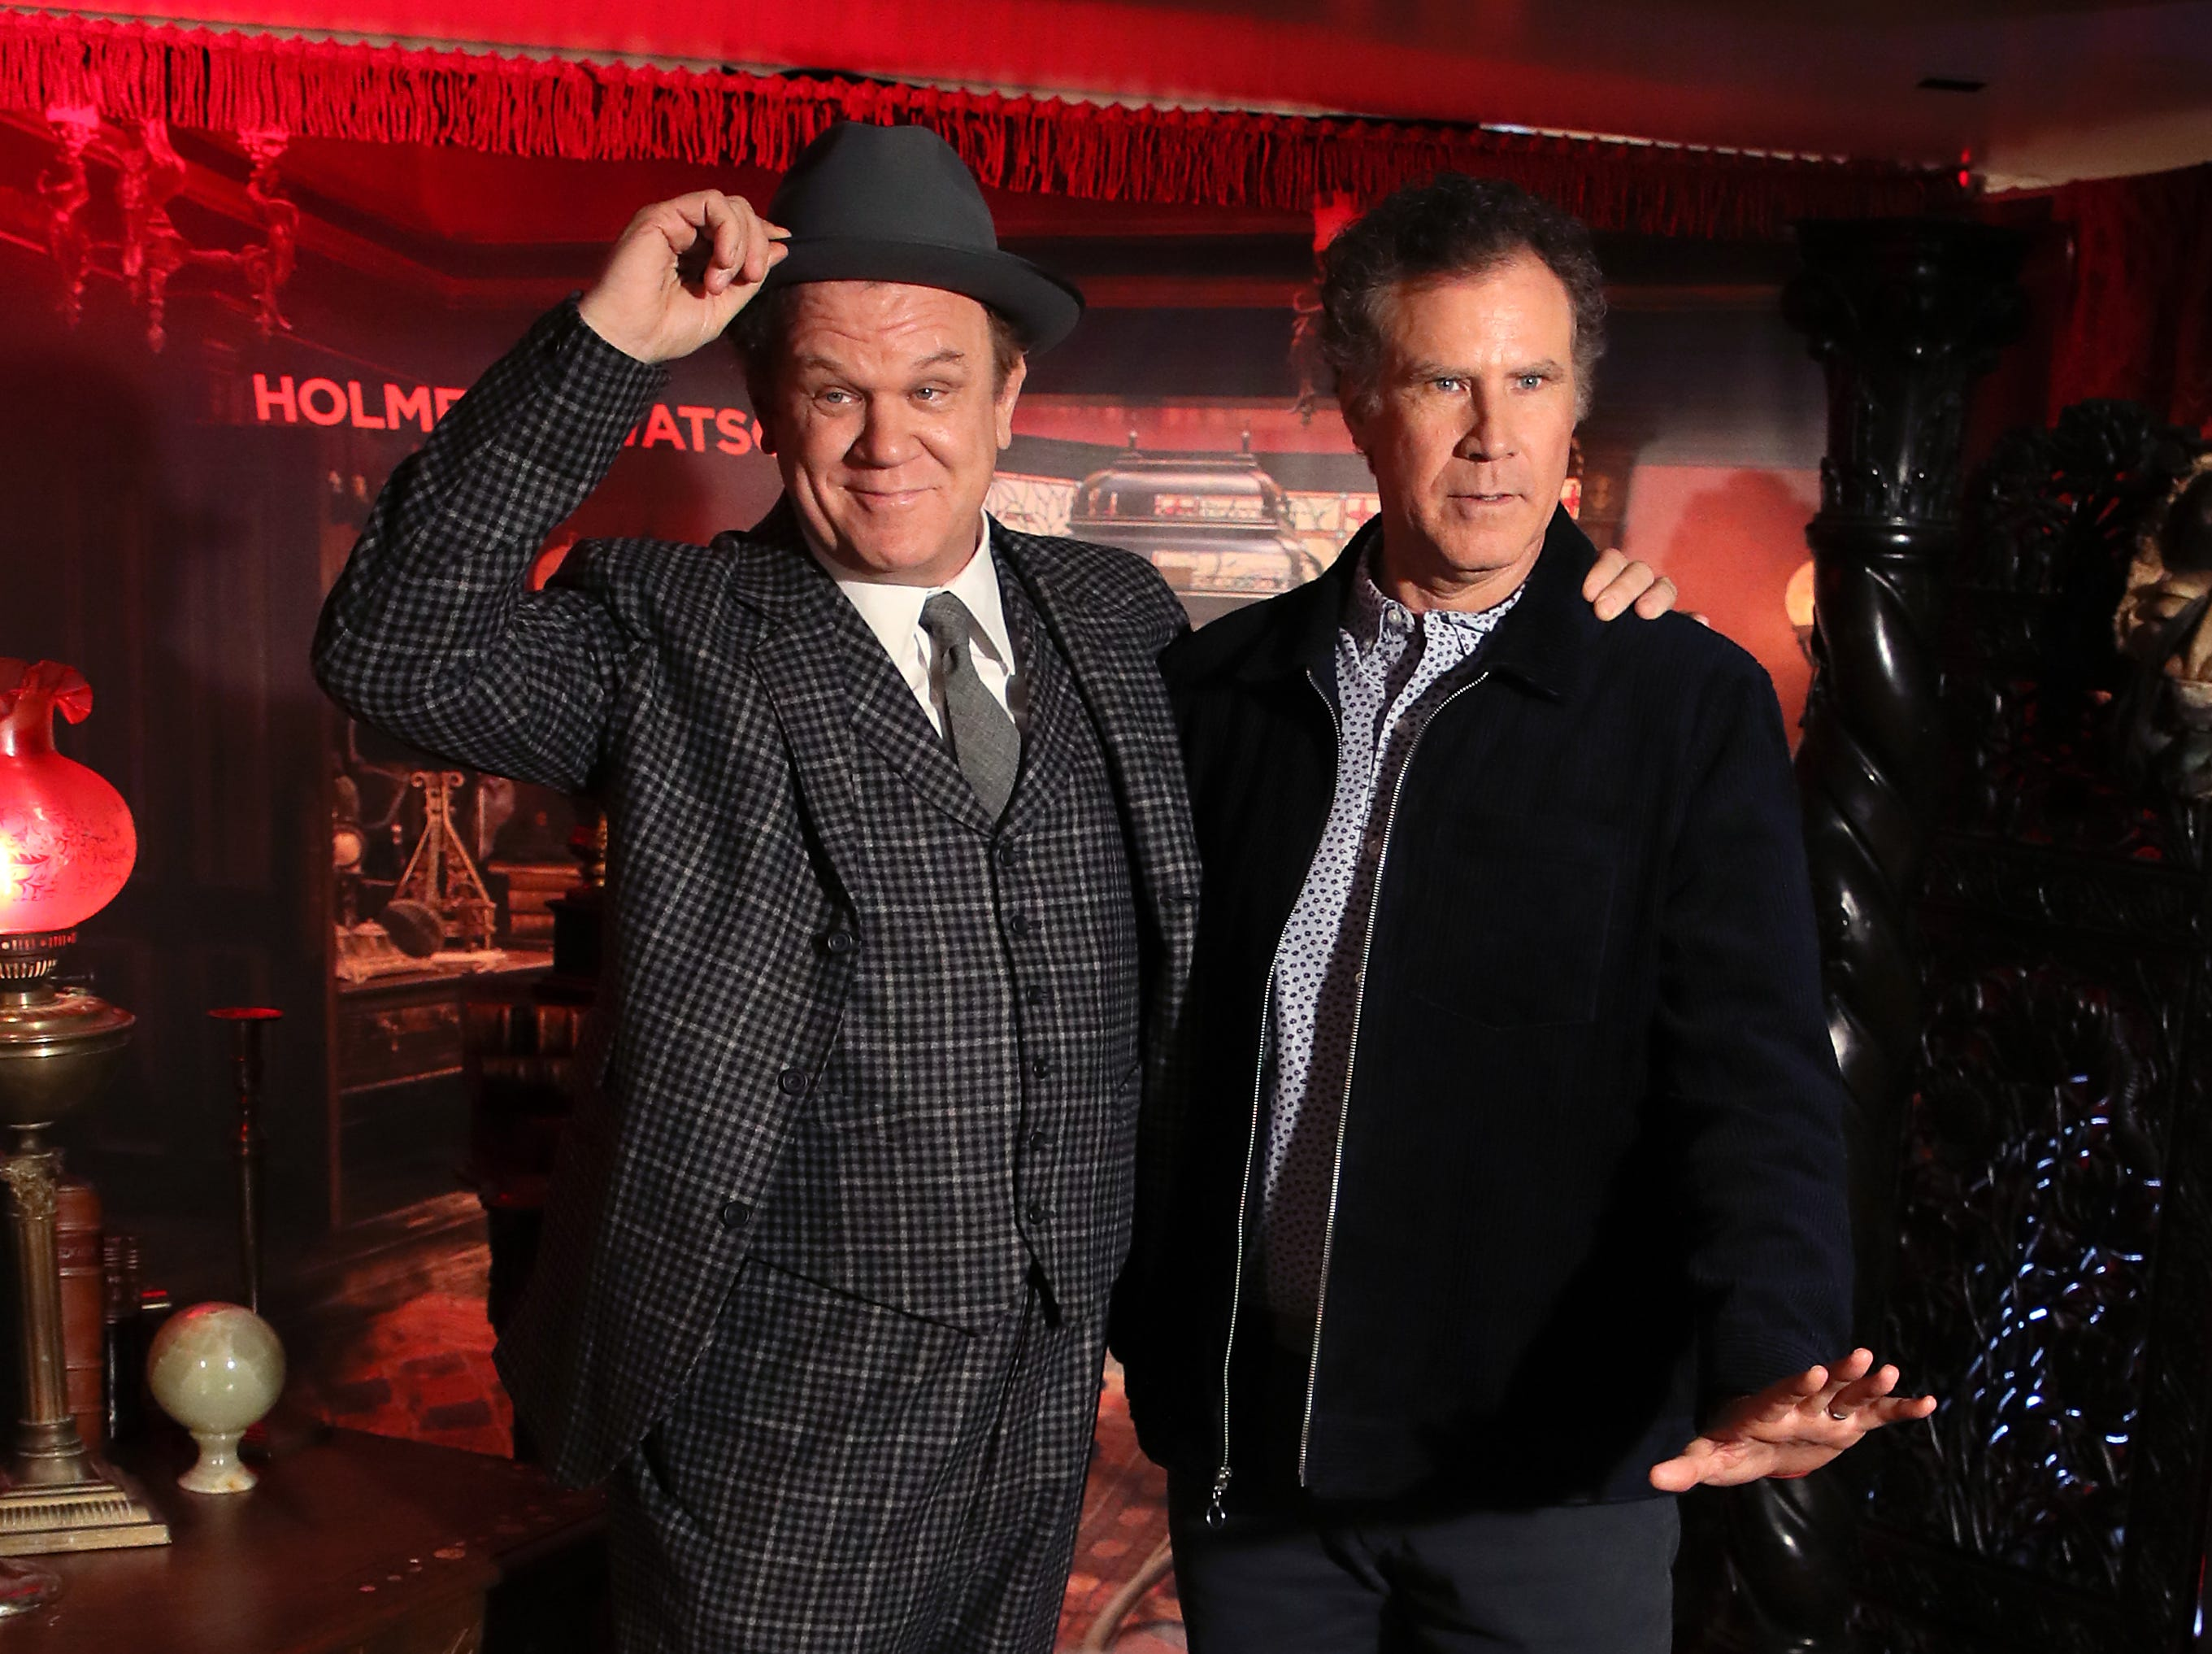 """WEST HOLLYWOOD, CALIFORNIA - DECEMBER 14: John C. Reilly (L) and Will Ferrell attend the """"Holmes & Watson"""" photo call at The London West Hollywood on December 14, 2018 in West Hollywood, California. (Photo by David Livingston/Getty Images) ORG XMIT: 775269224 ORIG FILE ID: 1082528428"""